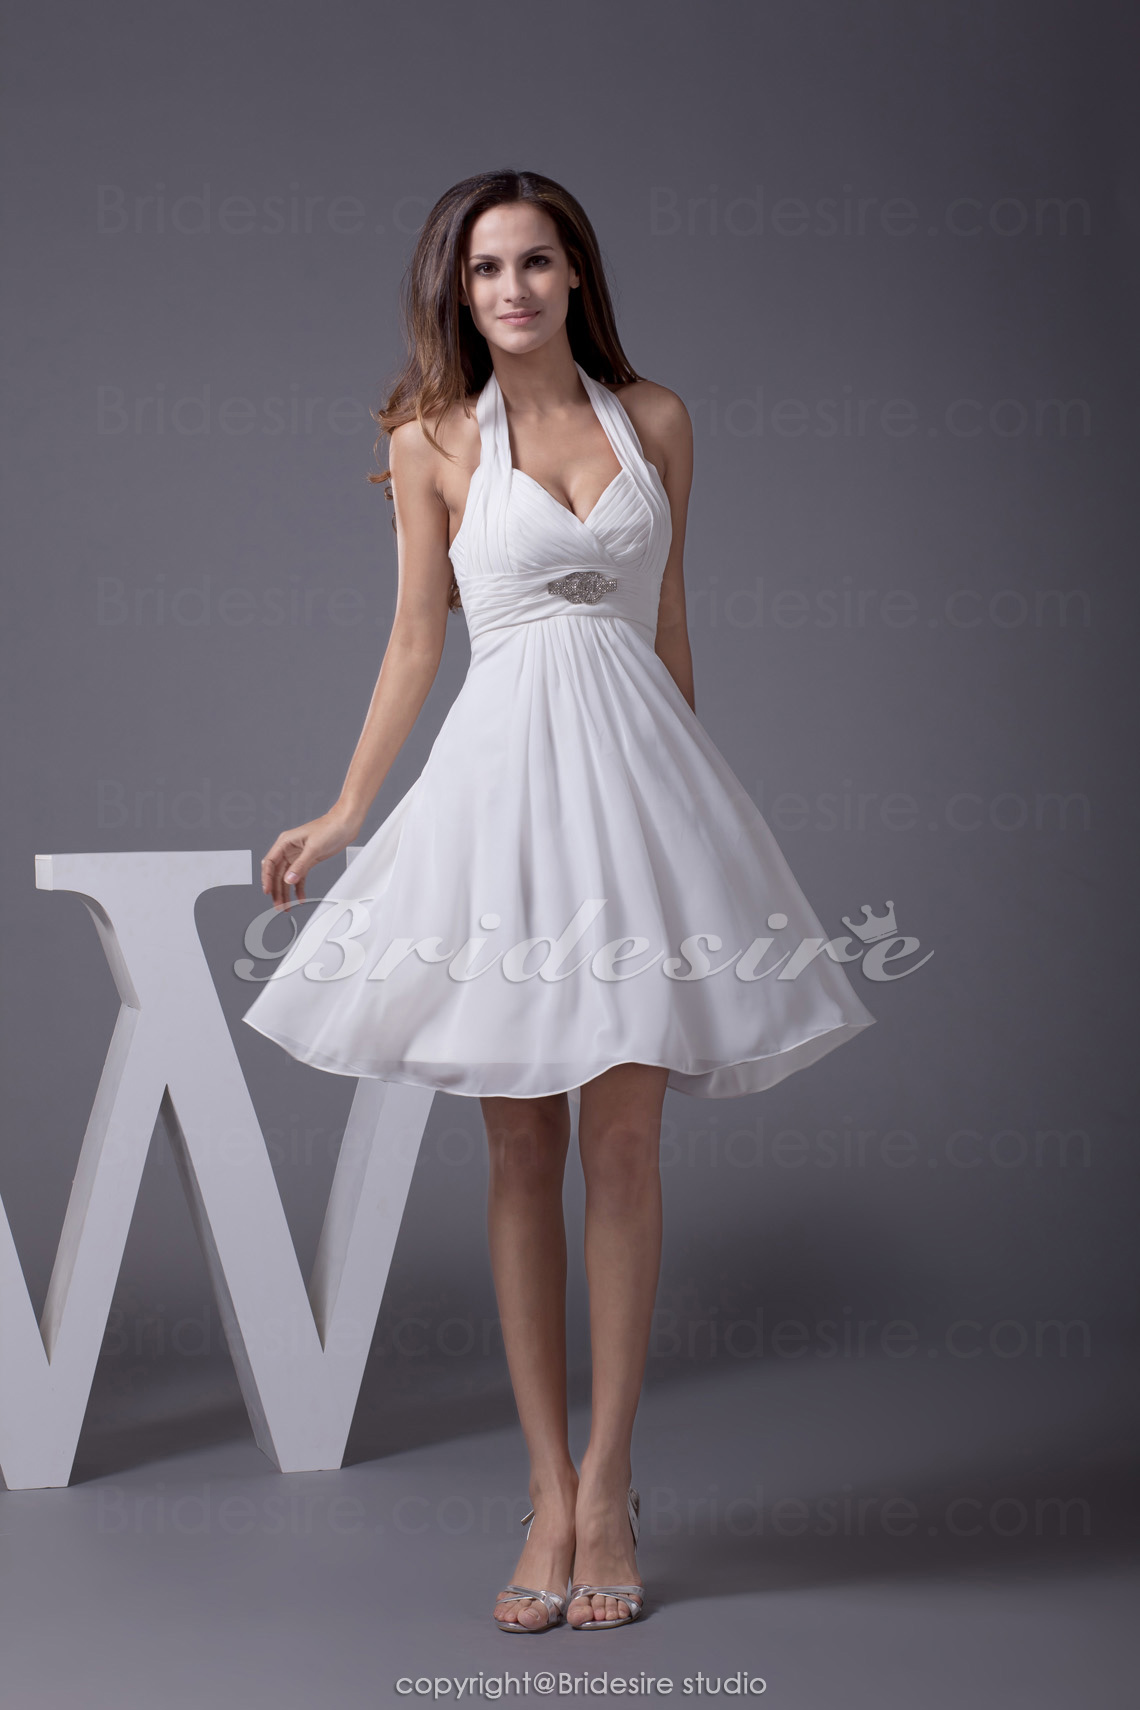 A-line Halter Short/Mini Sleeveless Chiffon Bridesmaid Dress